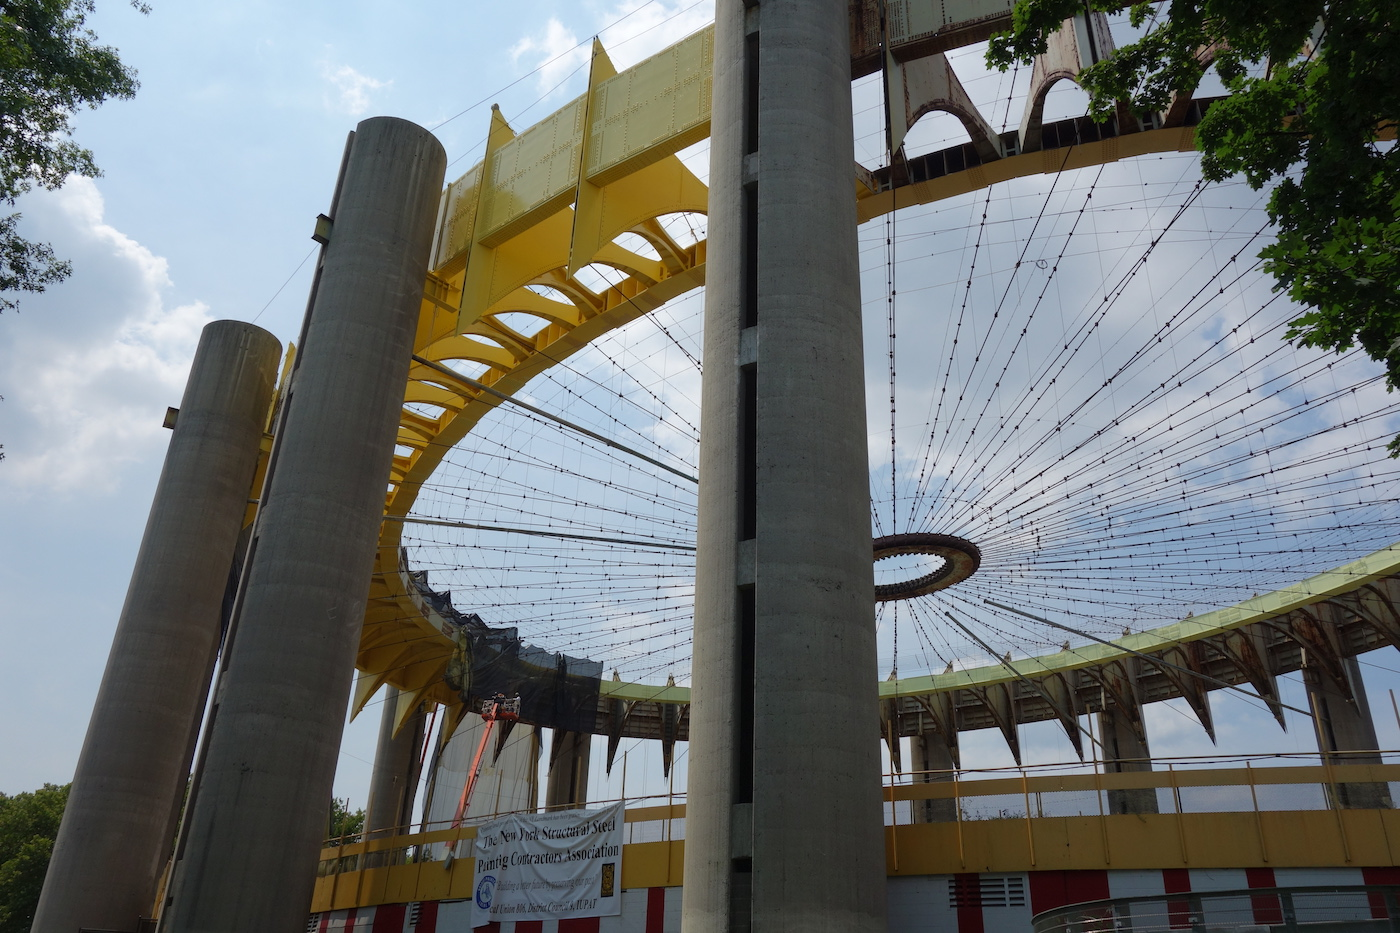 The New York State Pavilion being repainted in July 2015